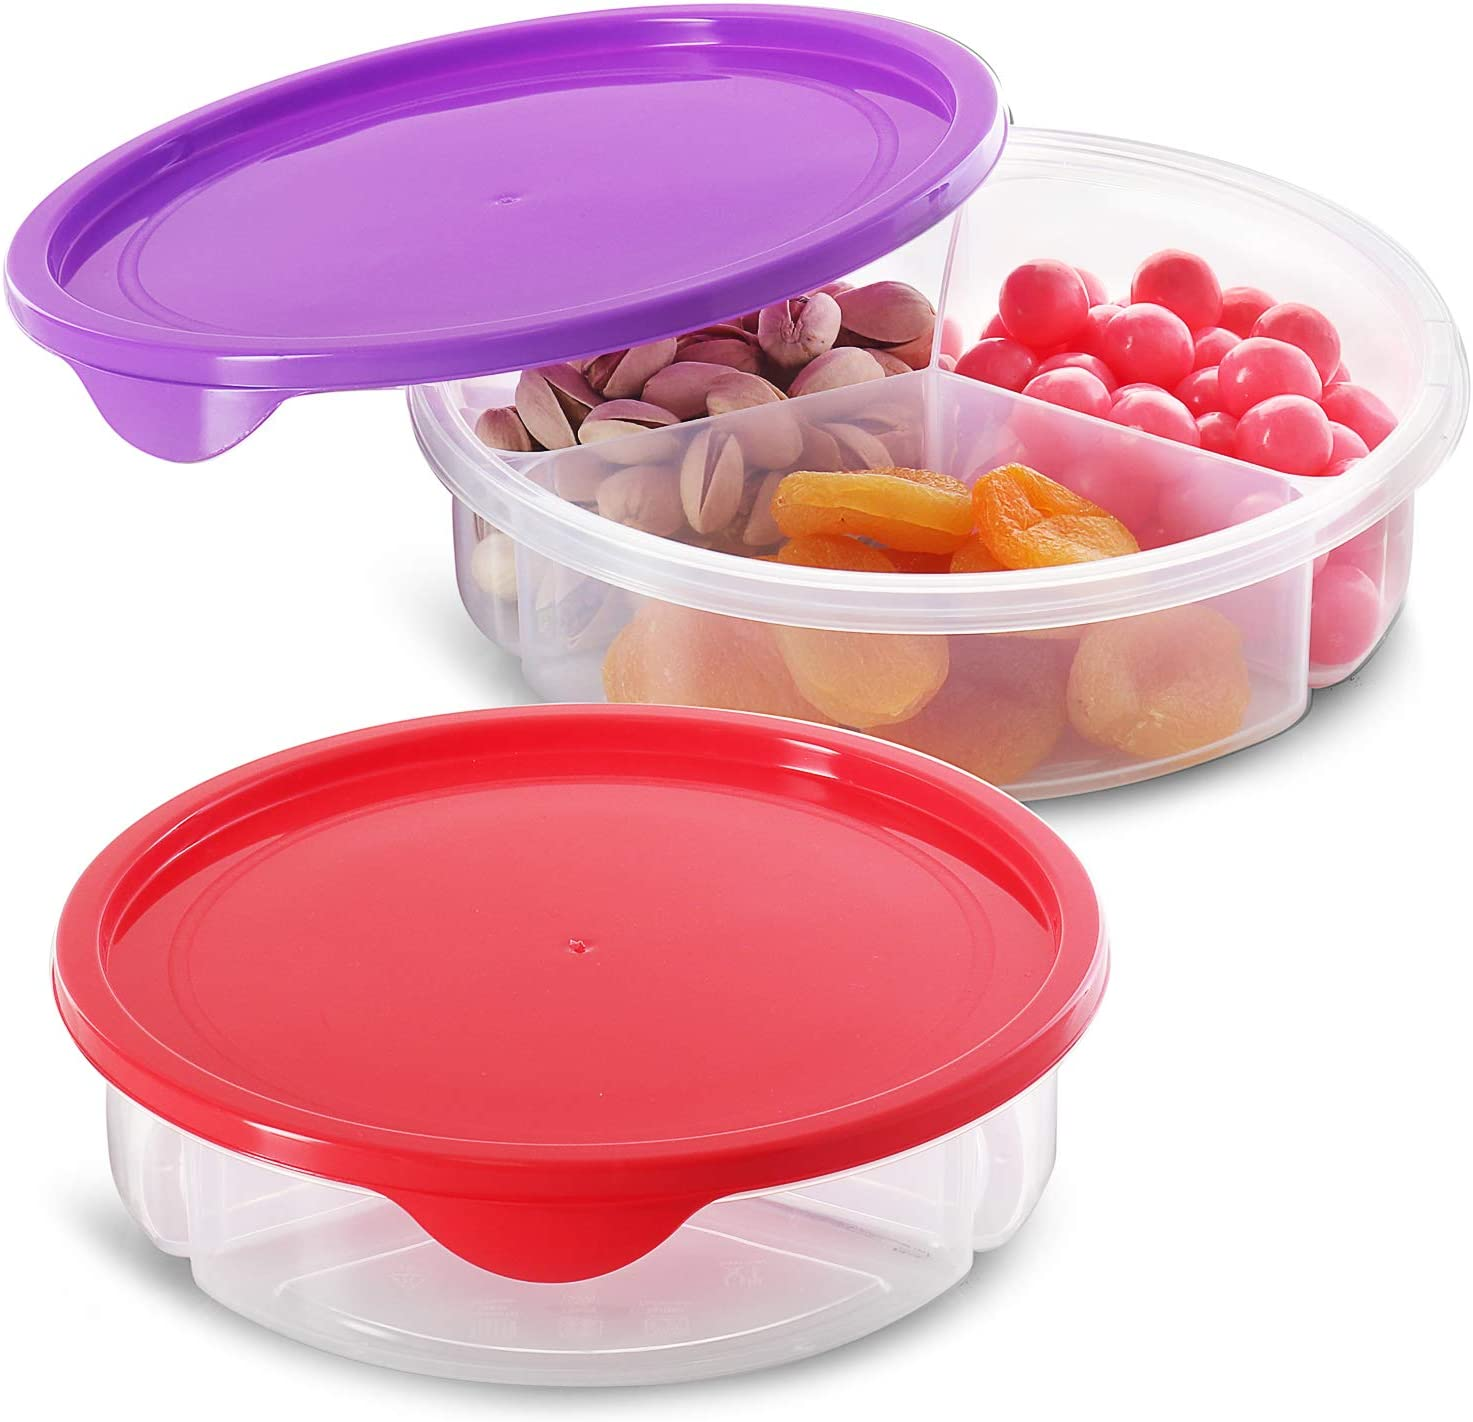 Zilpoo 2 Pack - Candy and Nut Serving Container, 3 Compartment Appetizer Tray with Lid, Round Plastic Food Storage Lunch Organizer, Divided Keto Snack Plate, Dish Platter w/Cover, 7-Inch